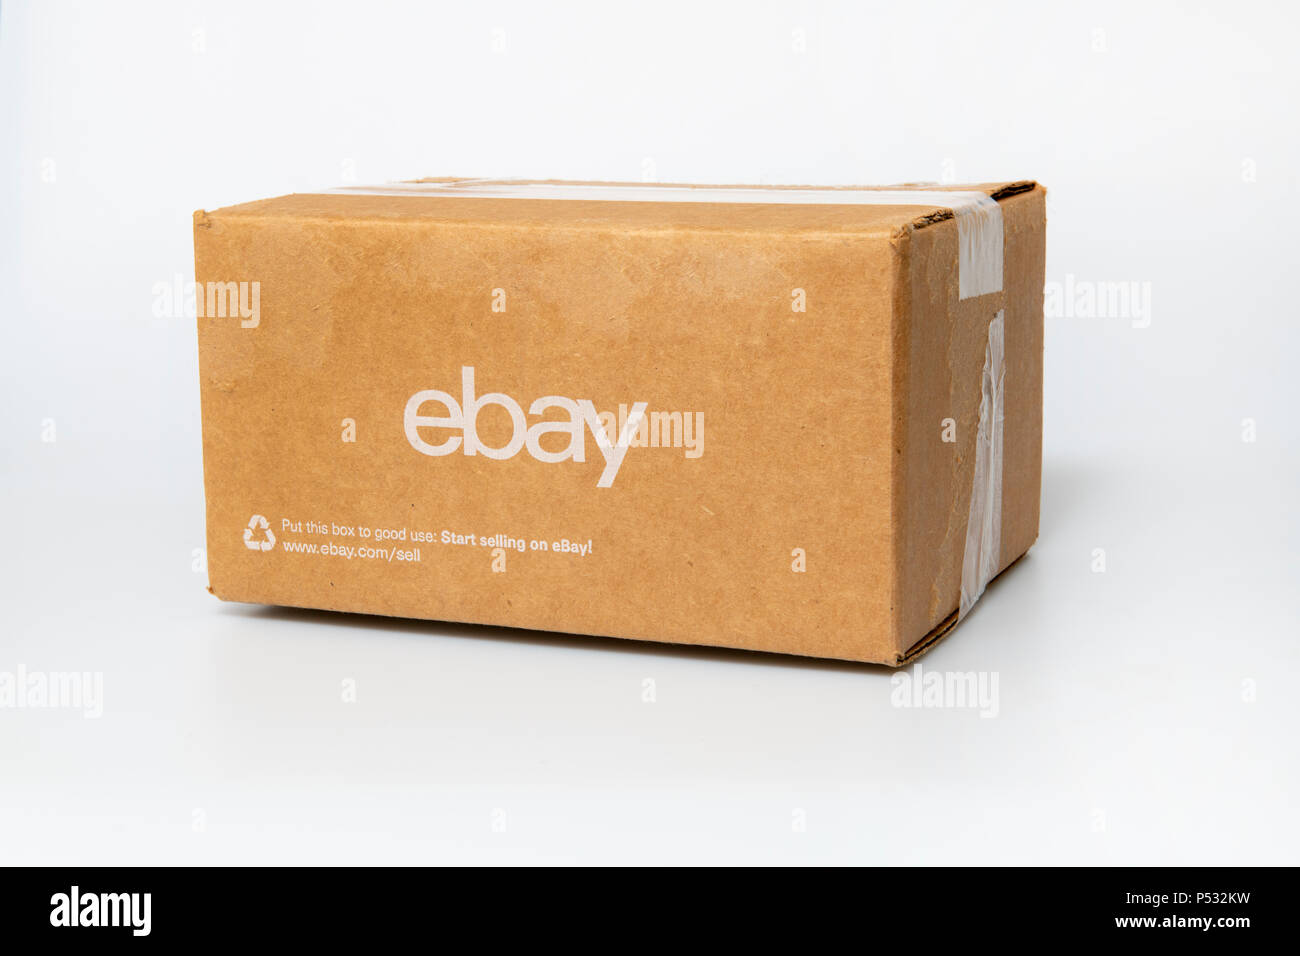 EBAY box on white shipping cardboard container for the auction site - Stock Image